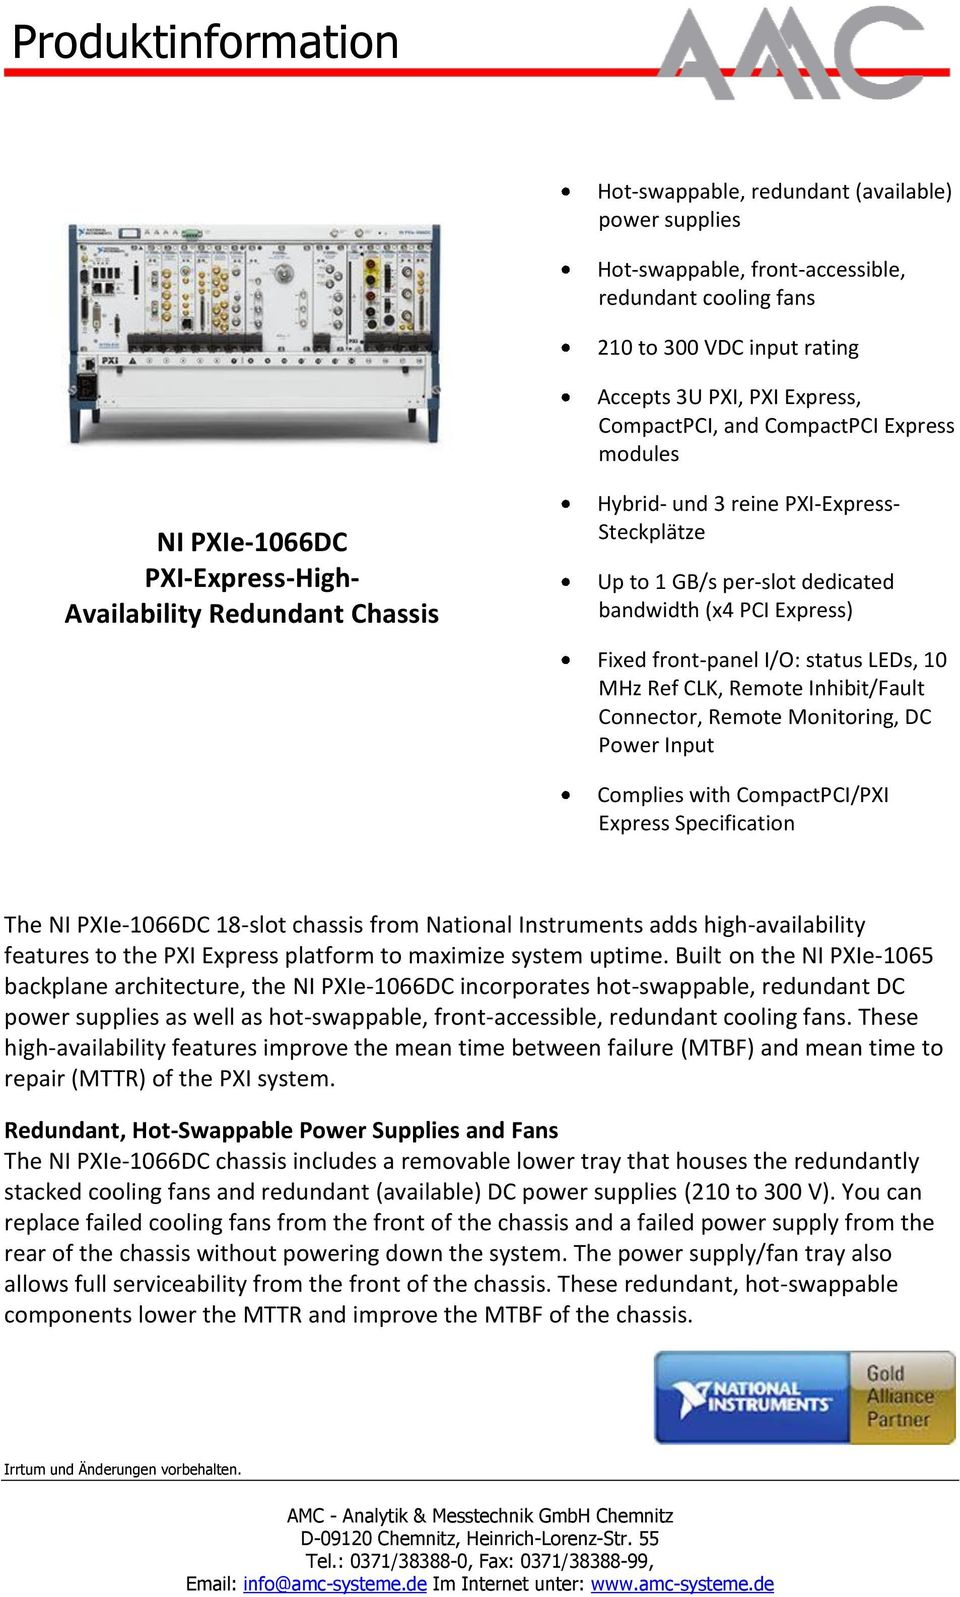 status LEDs, 10 MHz Ref CLK, Remote Inhibit/Fault Connector, Remote Monitoring, DC Power Input Complies with CompactPCI/PXI Express Specification The NI PXIe-1066DC 18-slot chassis from National